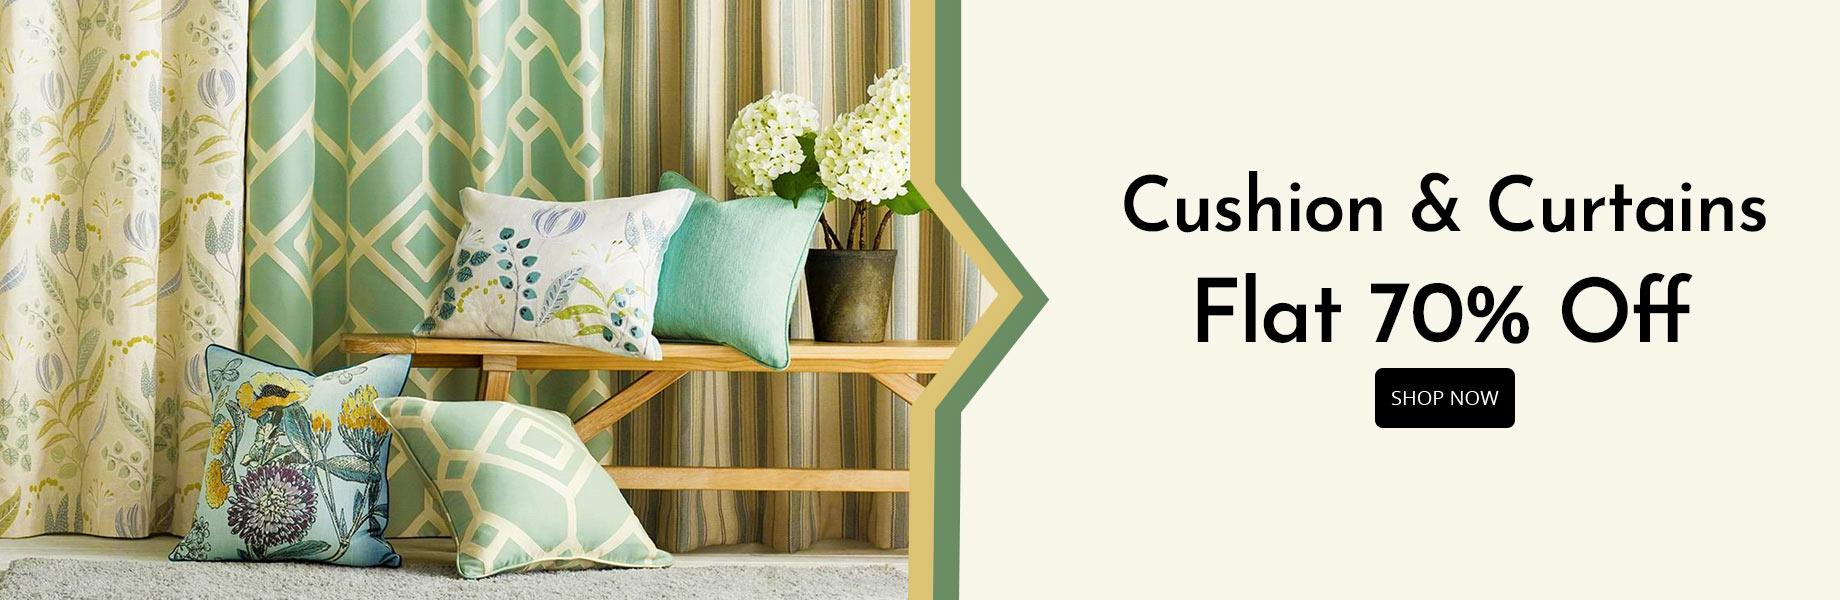 Offer-Page-Home-&-Kitchen-Static-Cushion-&-Curtains-Web.jpg